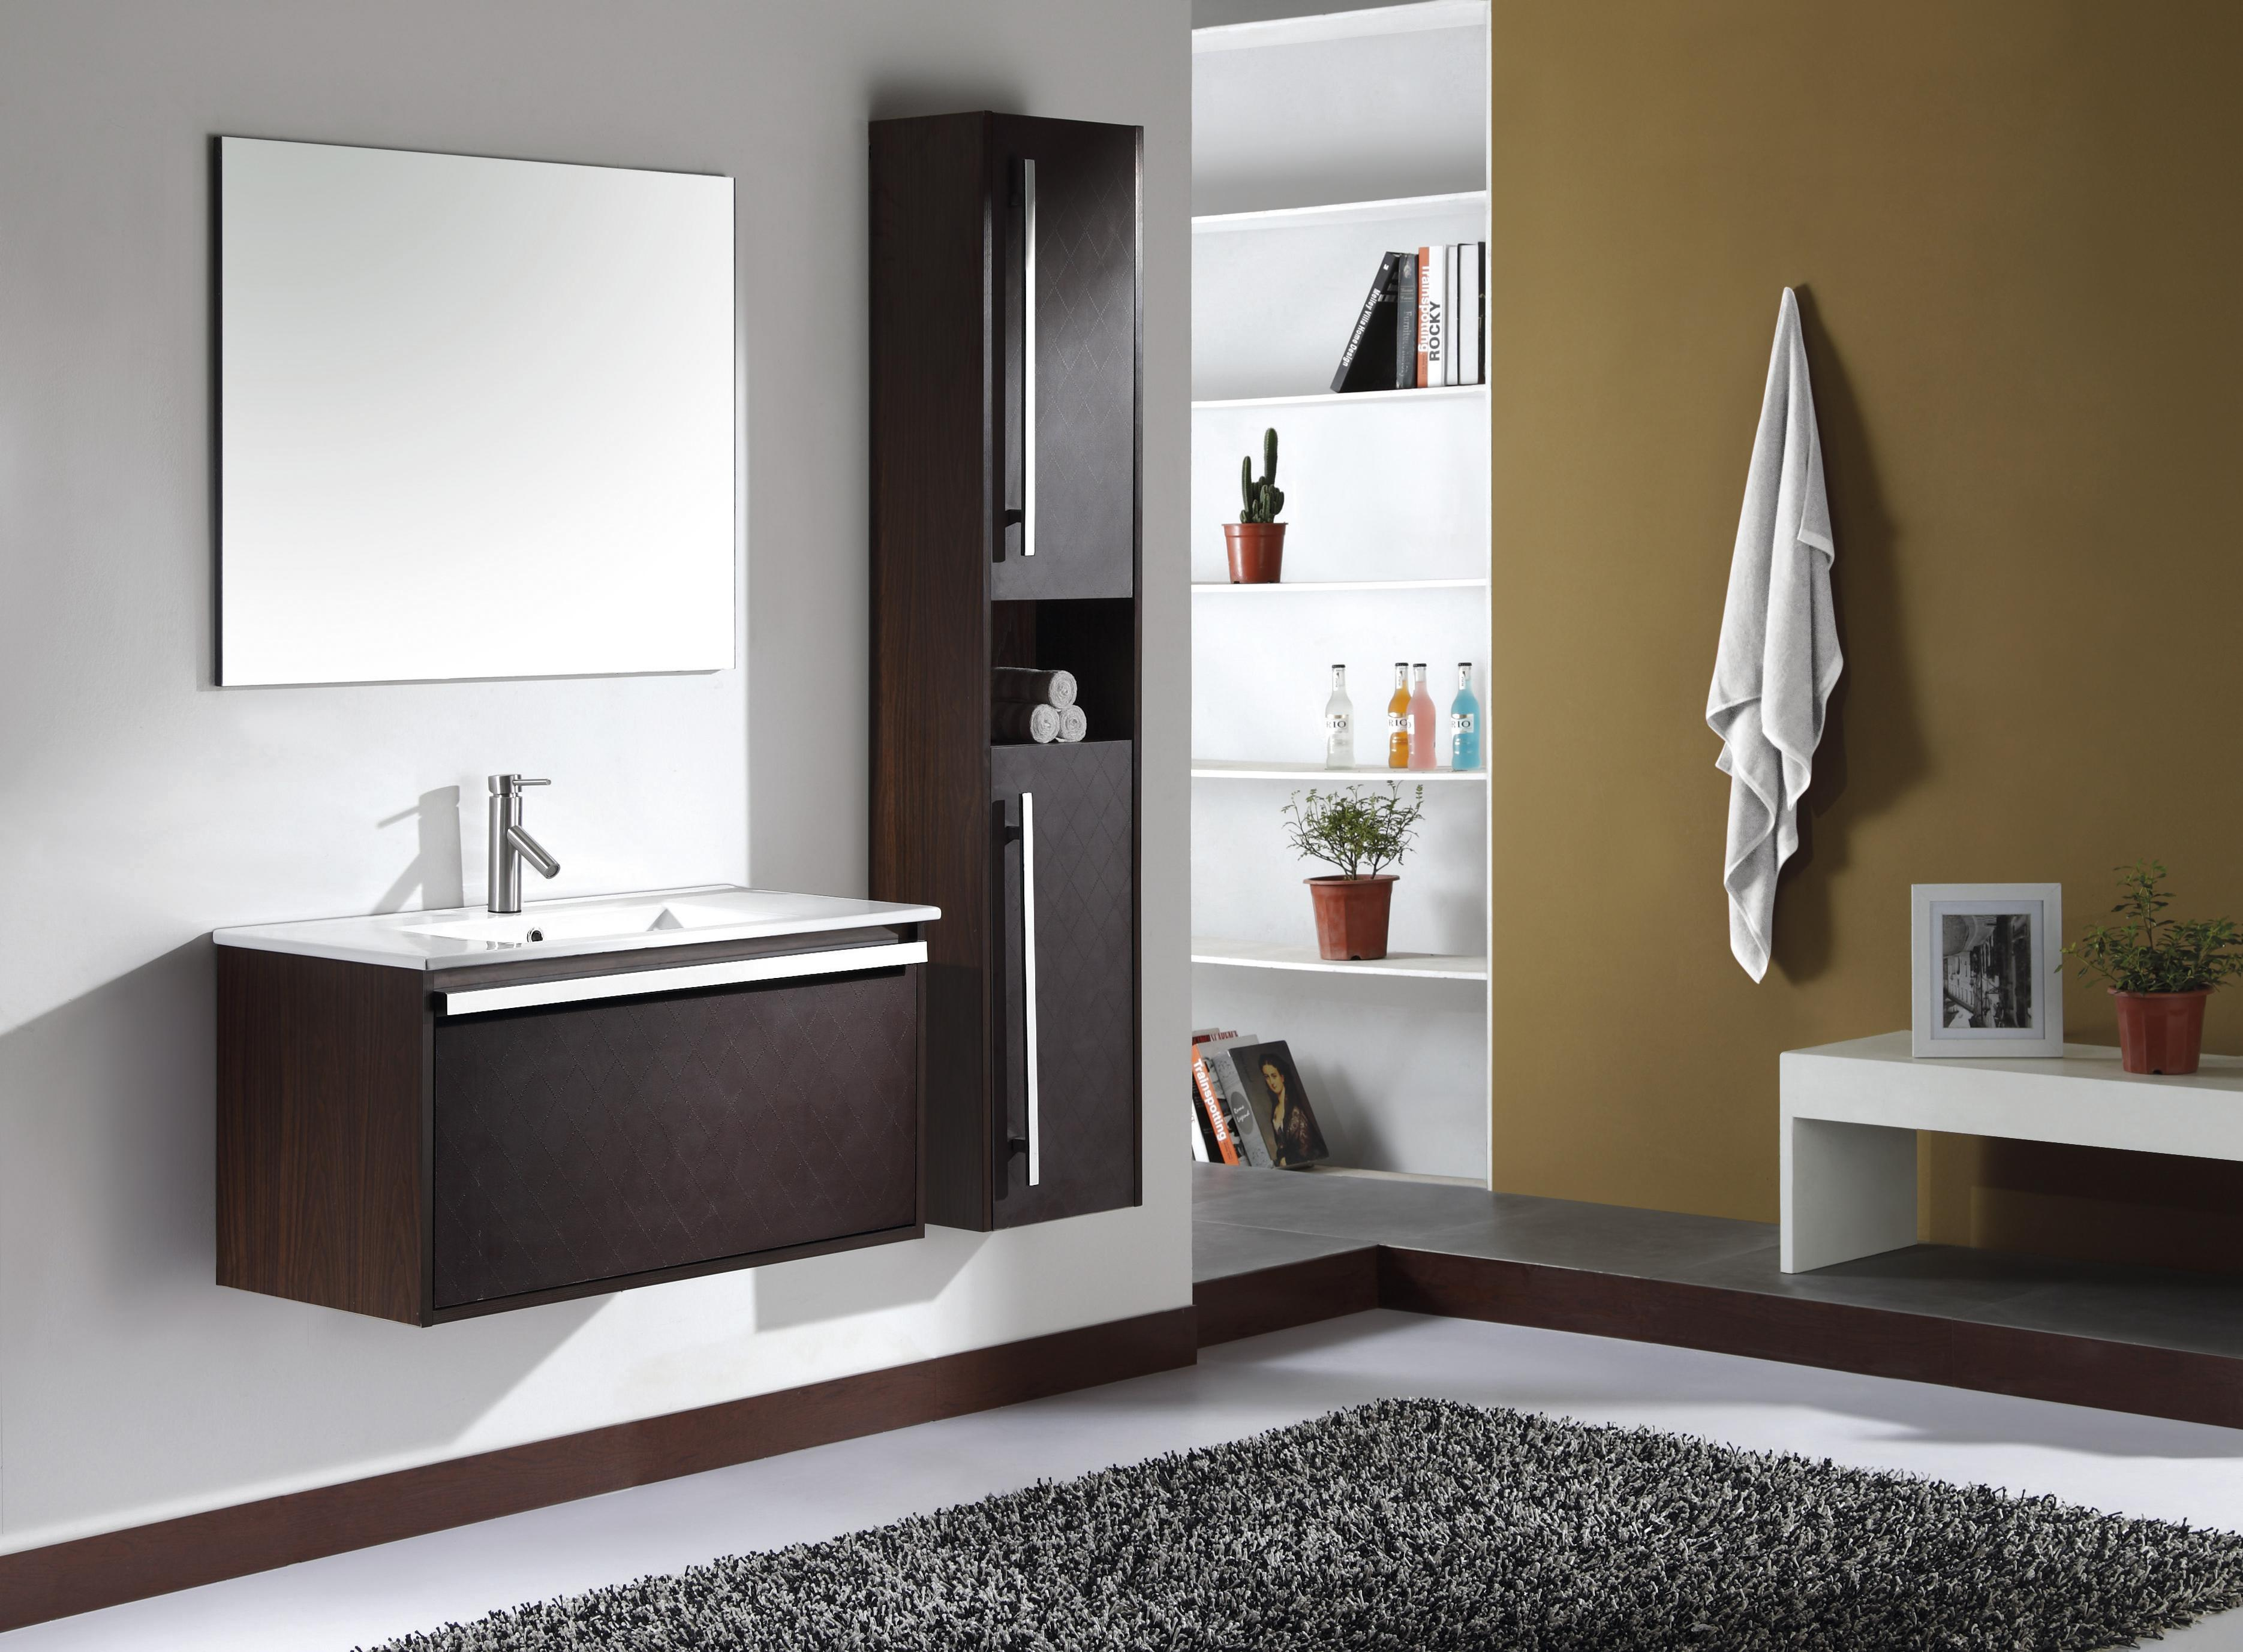 Tall Bathroom Mirrors Decoration Designs Guide Best Decoration Designs Guides